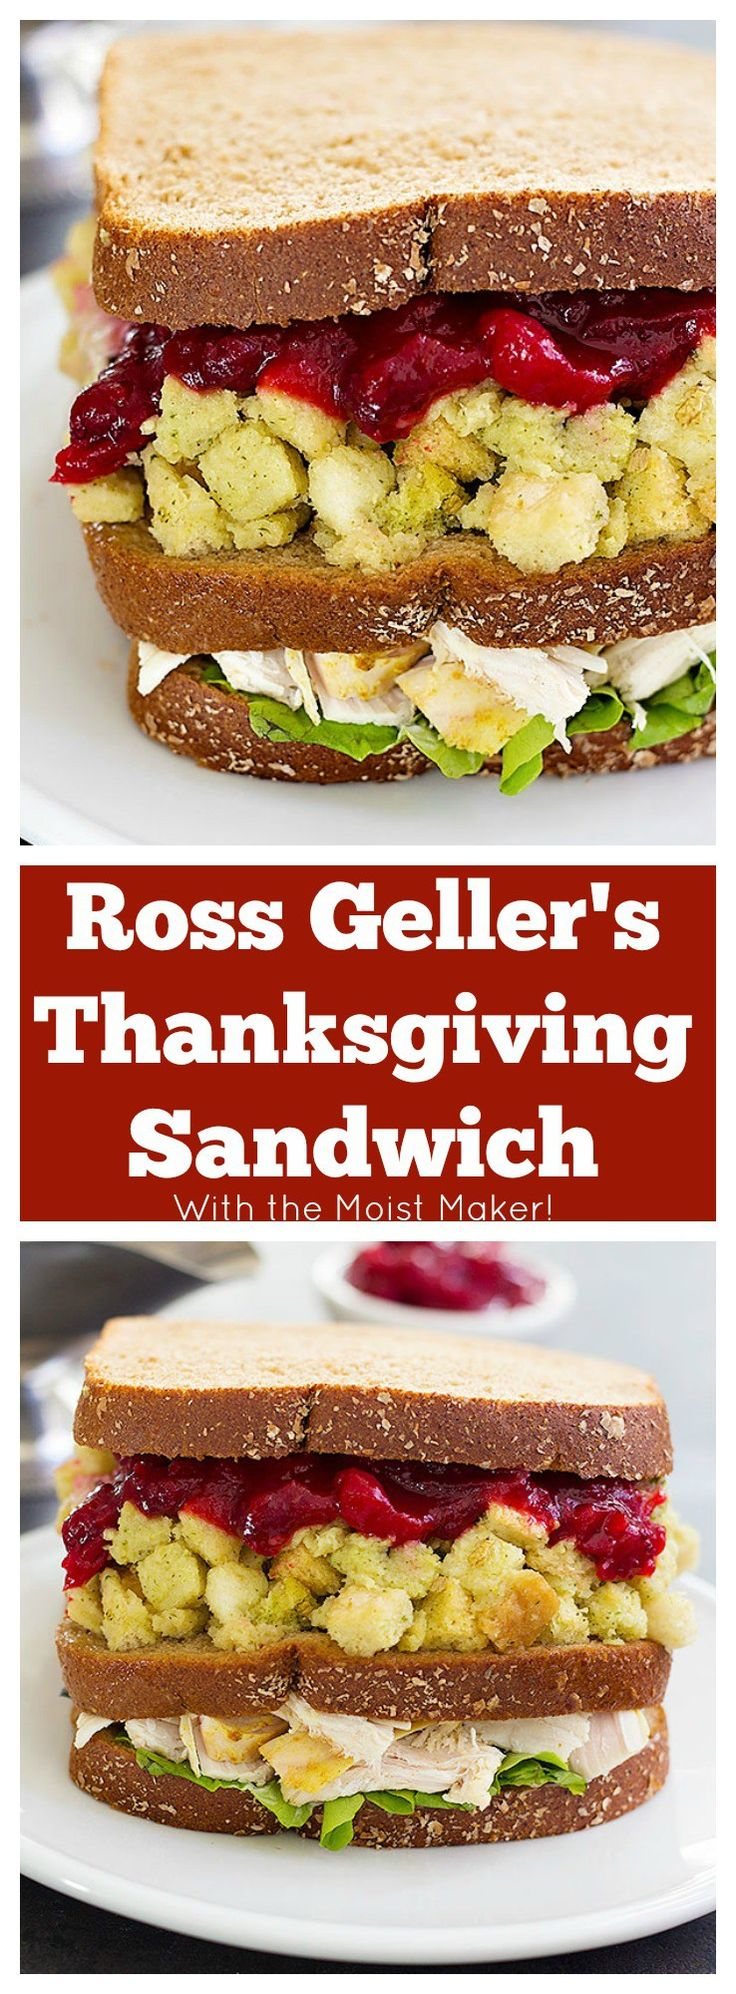 Inspired by a classic episode of Friends, Ross Geller's Thanksgiving Sandwich with the Moist Maker is a great way to use up all those leftovers from Thanksgiving. Make sure to write your name on your sandwich!